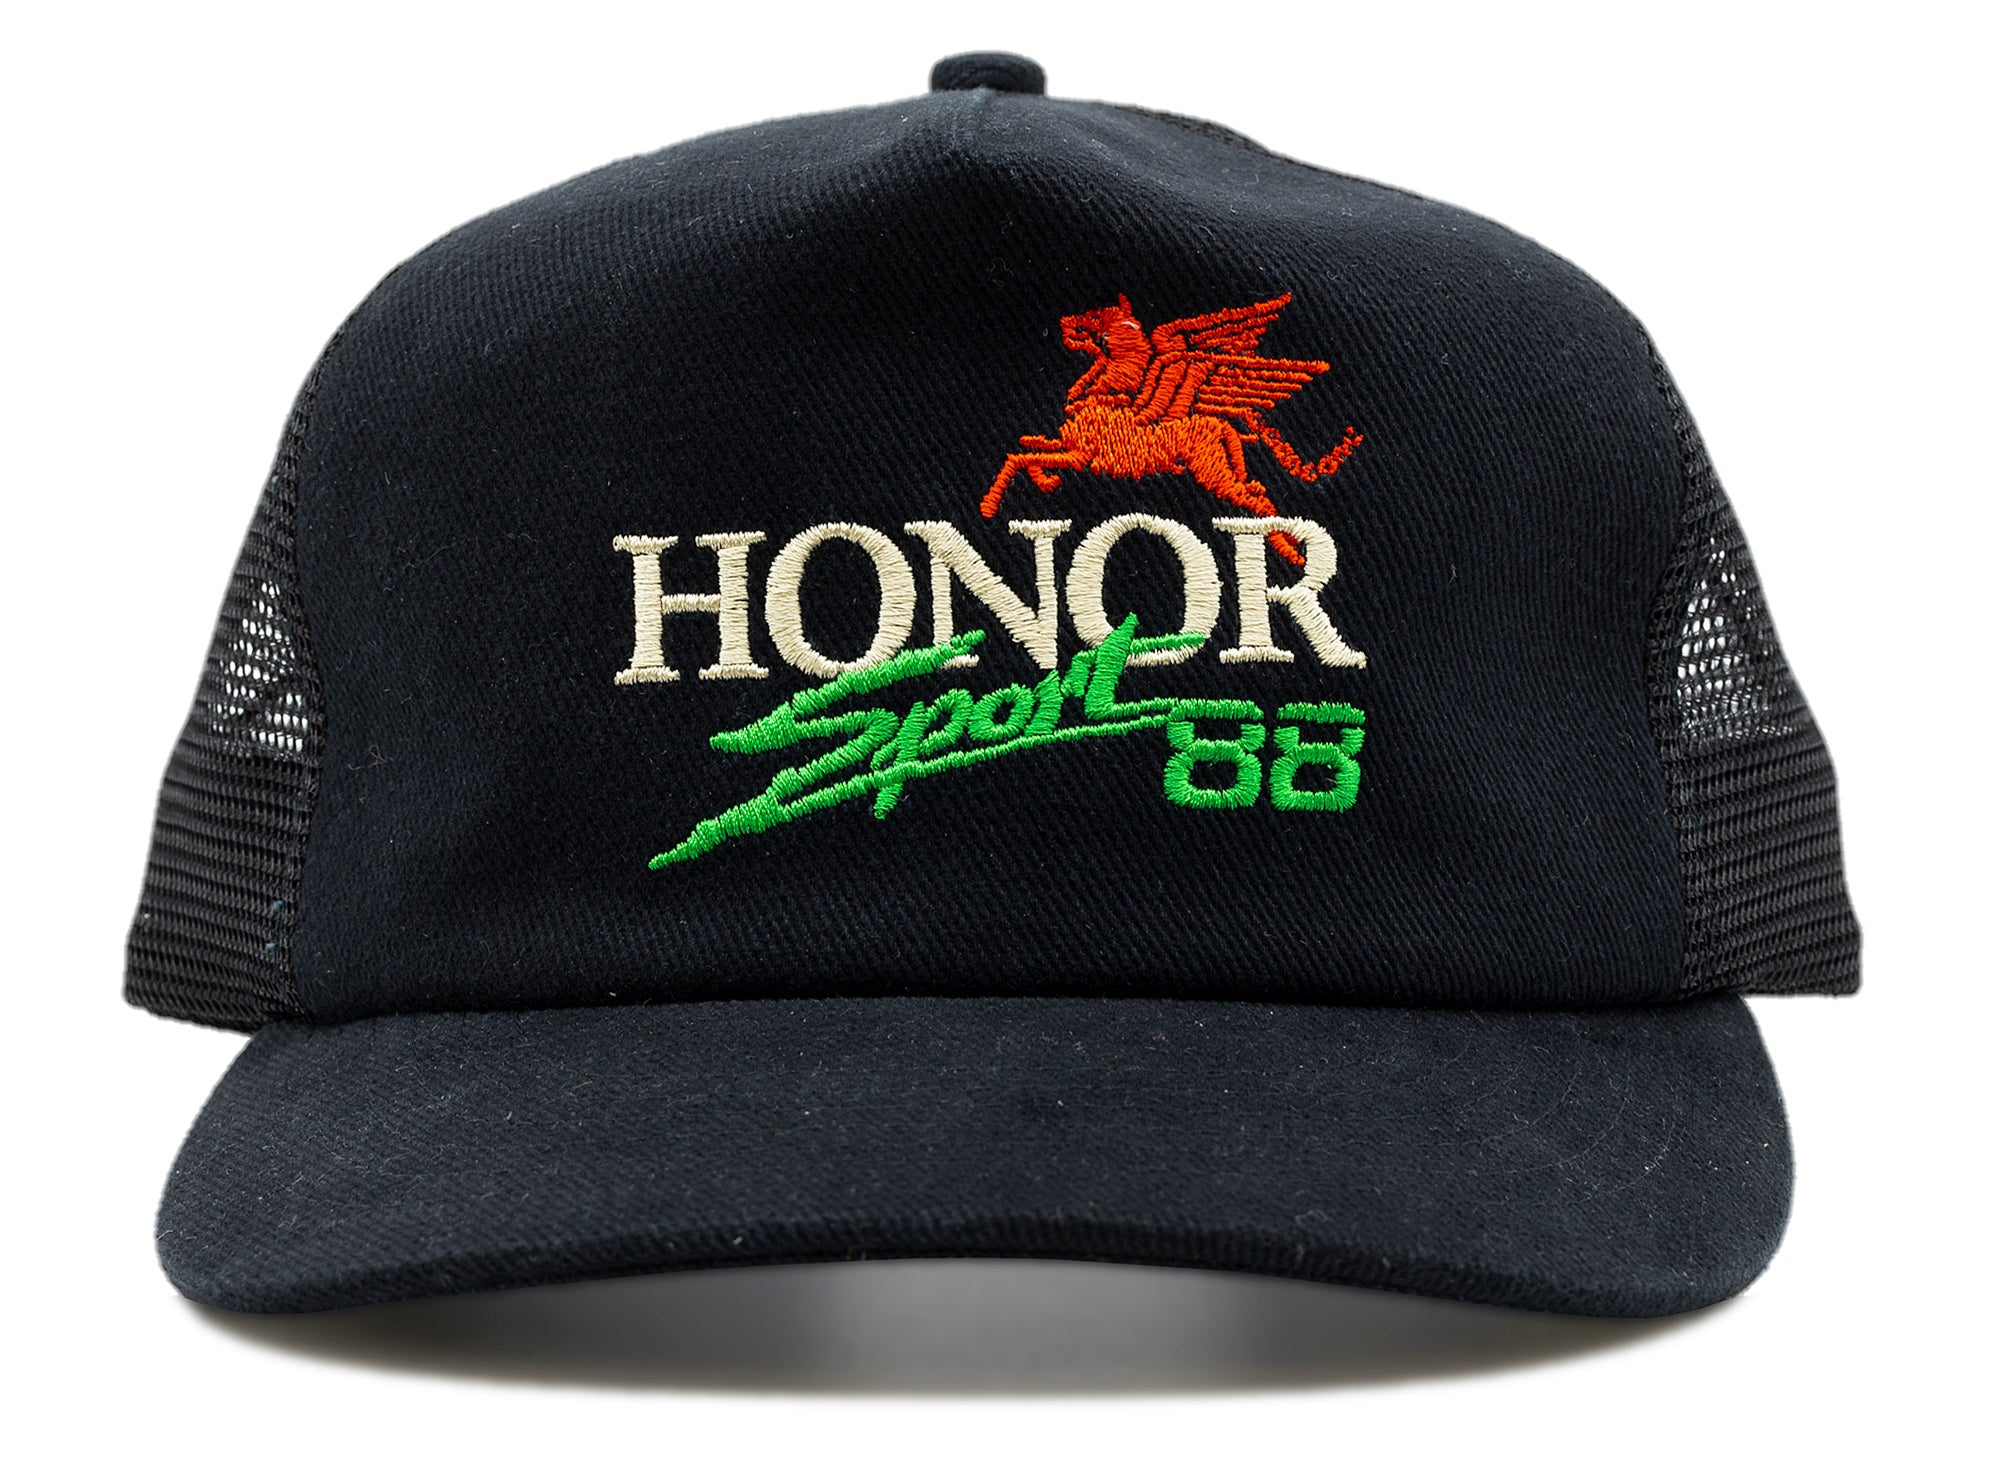 Honor the Gift Honor Sport 88 Hat xld